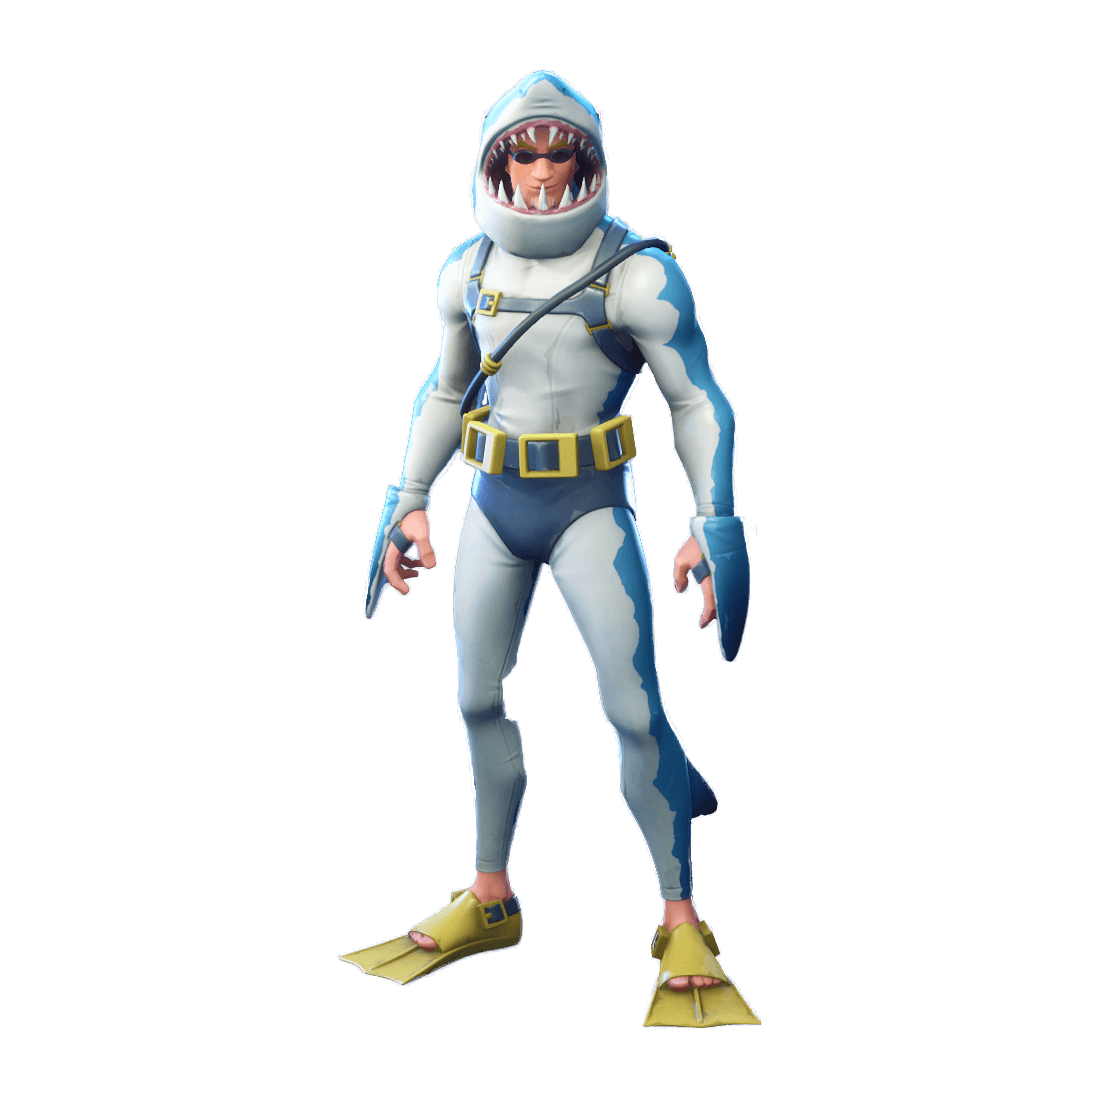 Fortnite Chomp Sr. PNG Image - PurePNG | Free transparent CC0 PNG ...